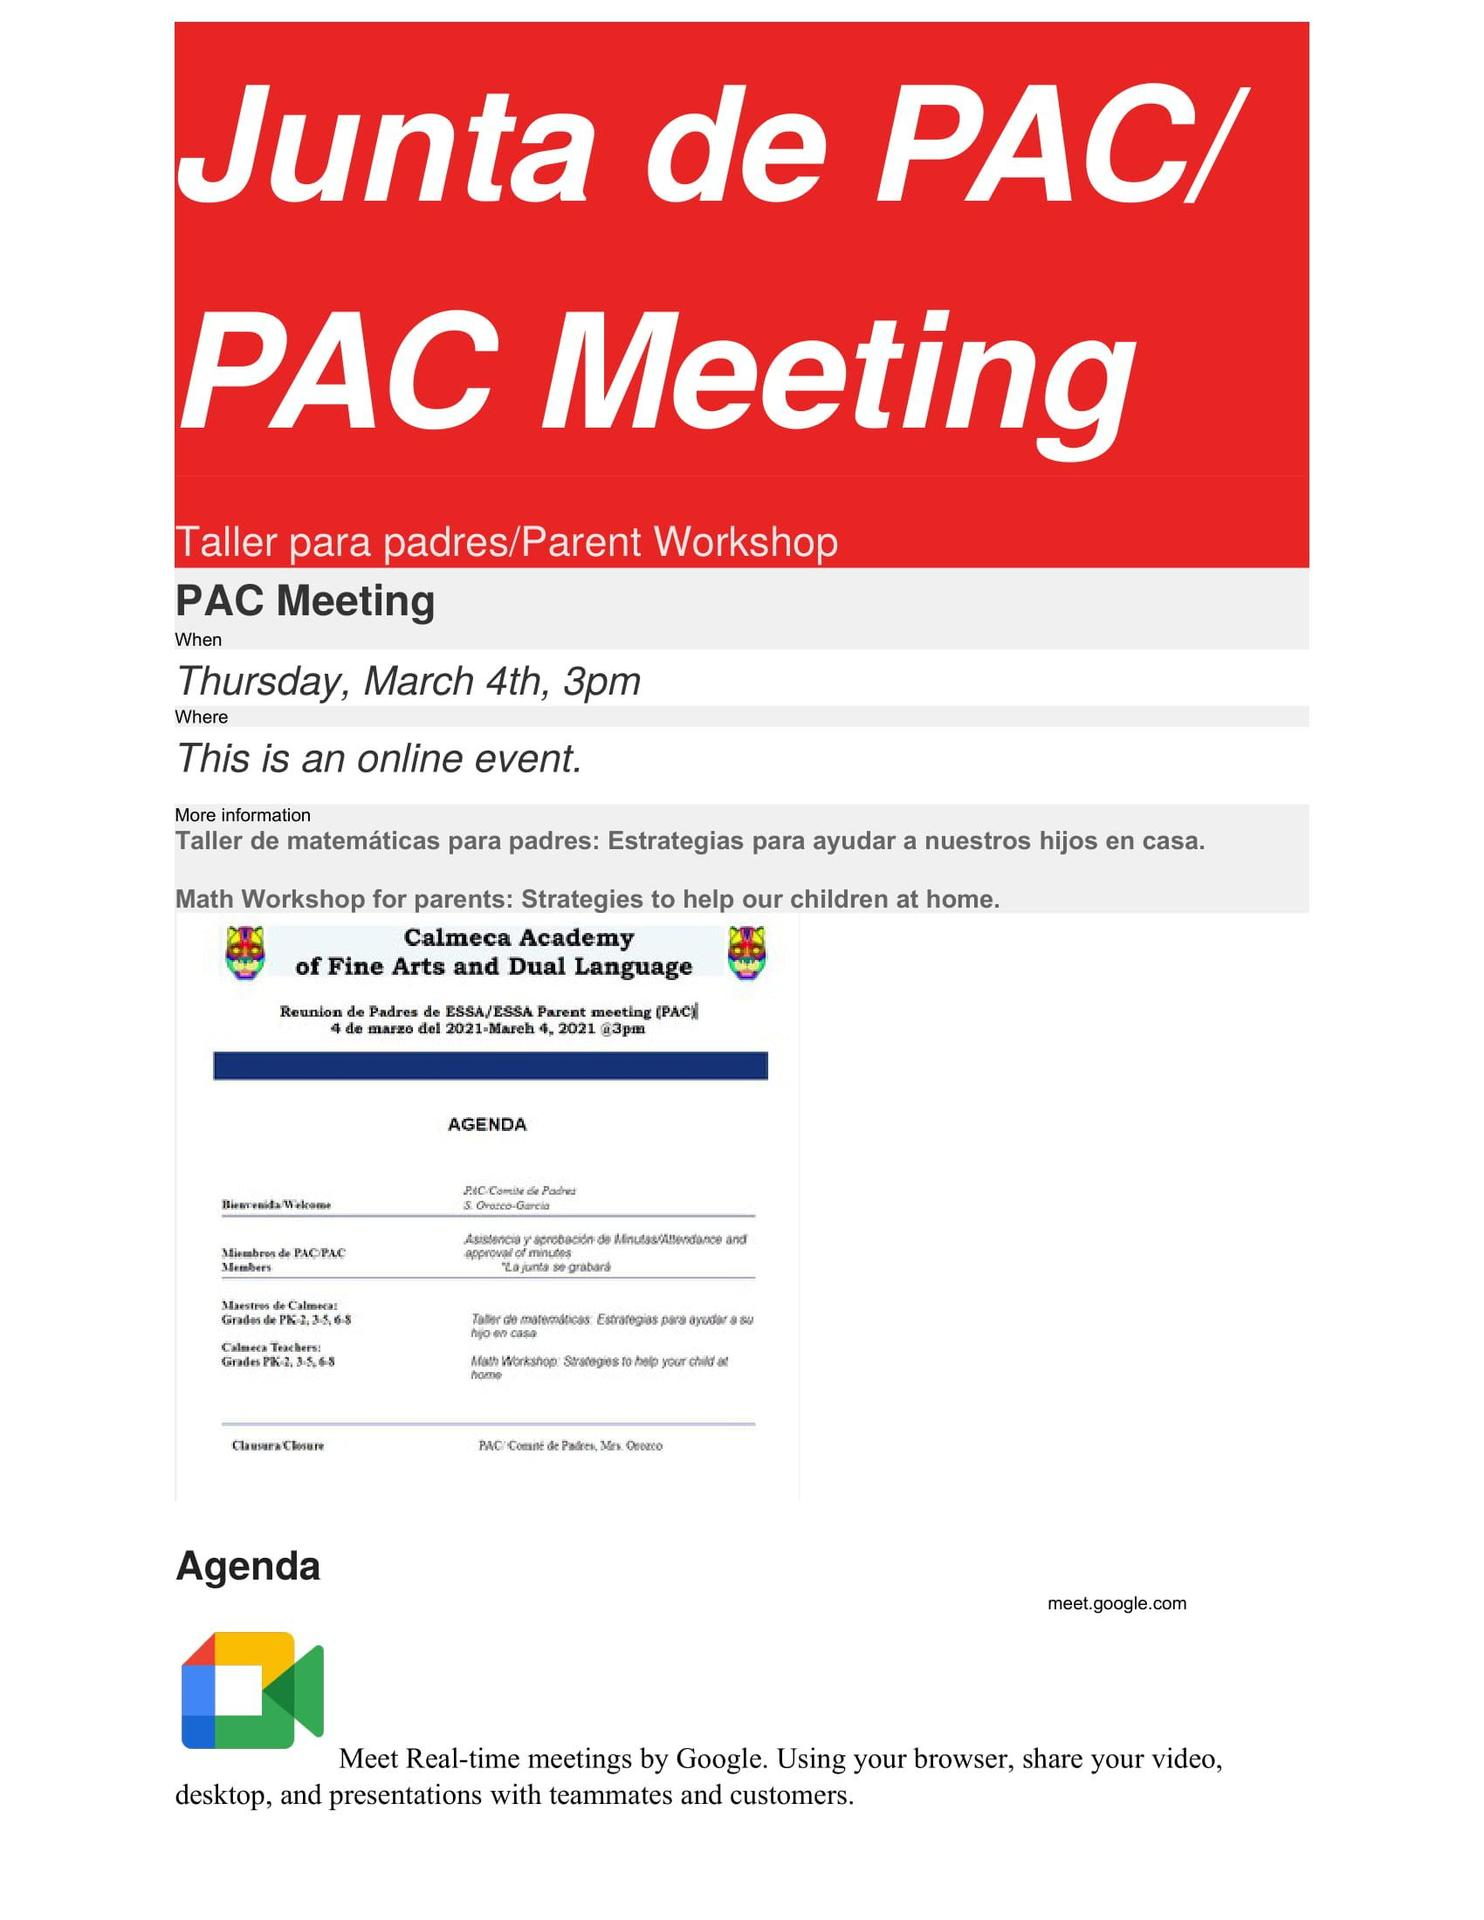 PAC Meeting March 4, 2021